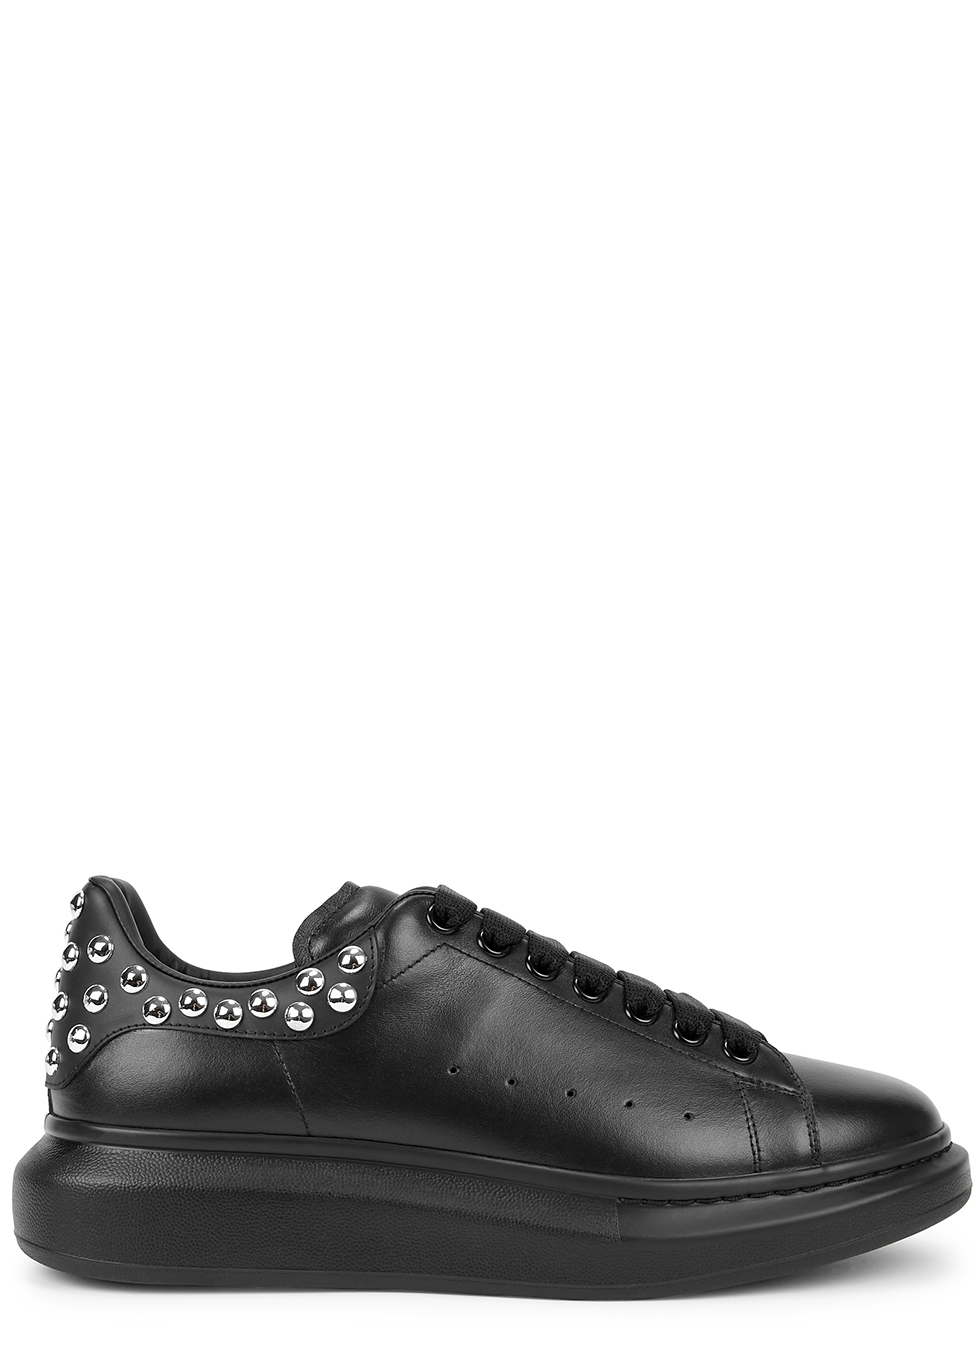 Larry black studded leather sneakers